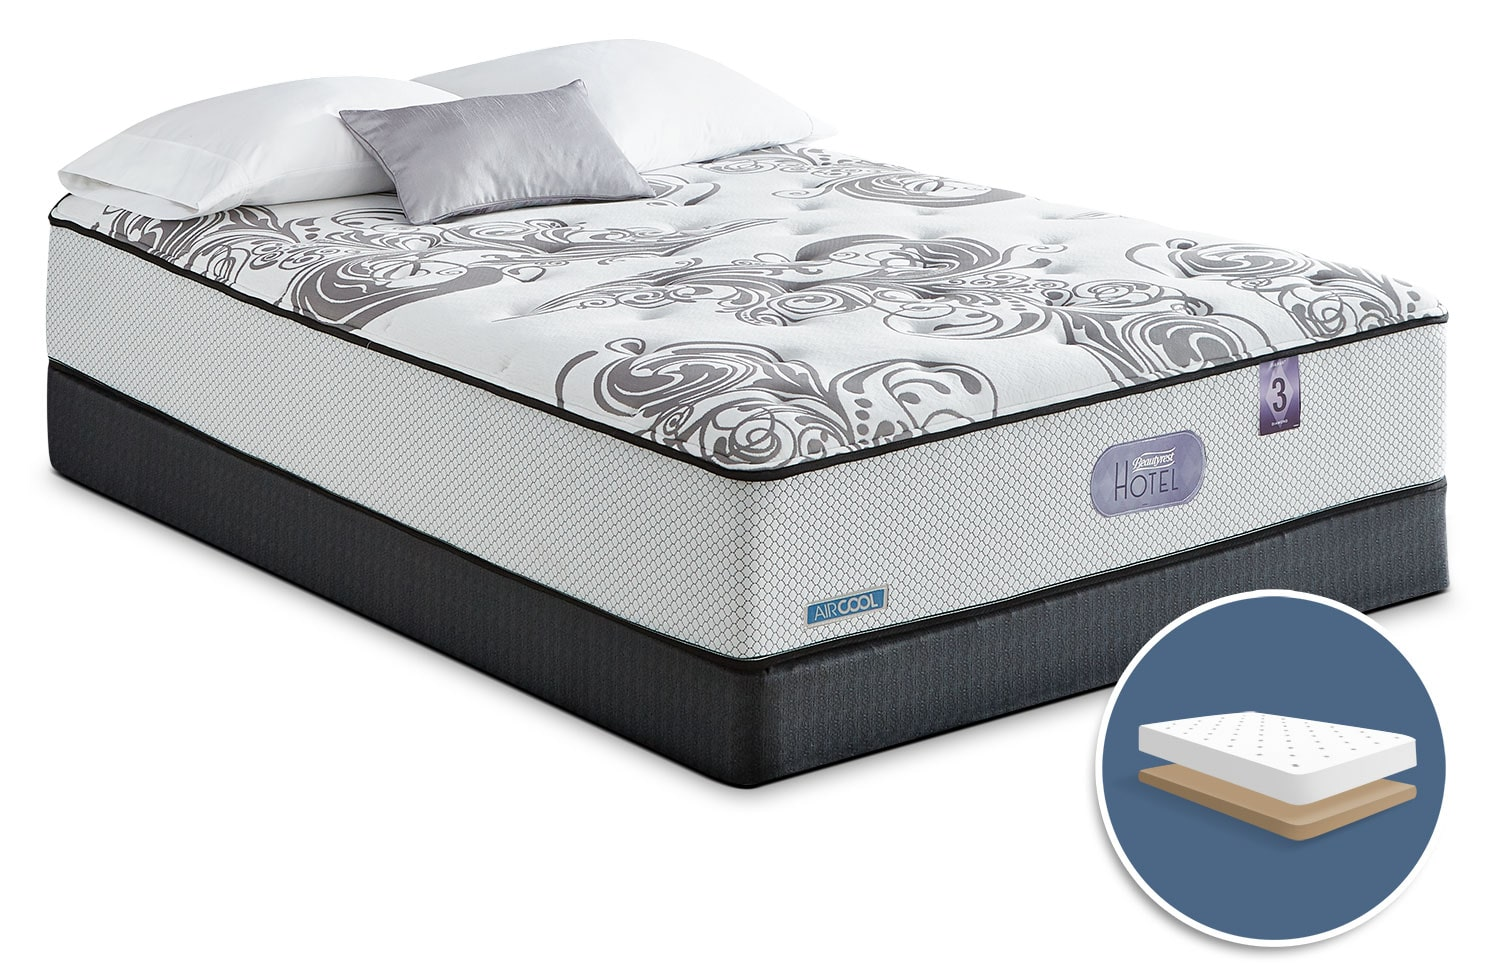 Mattresses and Bedding - Simmons Beautyrest® Hotel Diamond 3.0 Tight-Top Firm Low-Profile King Mattress Set